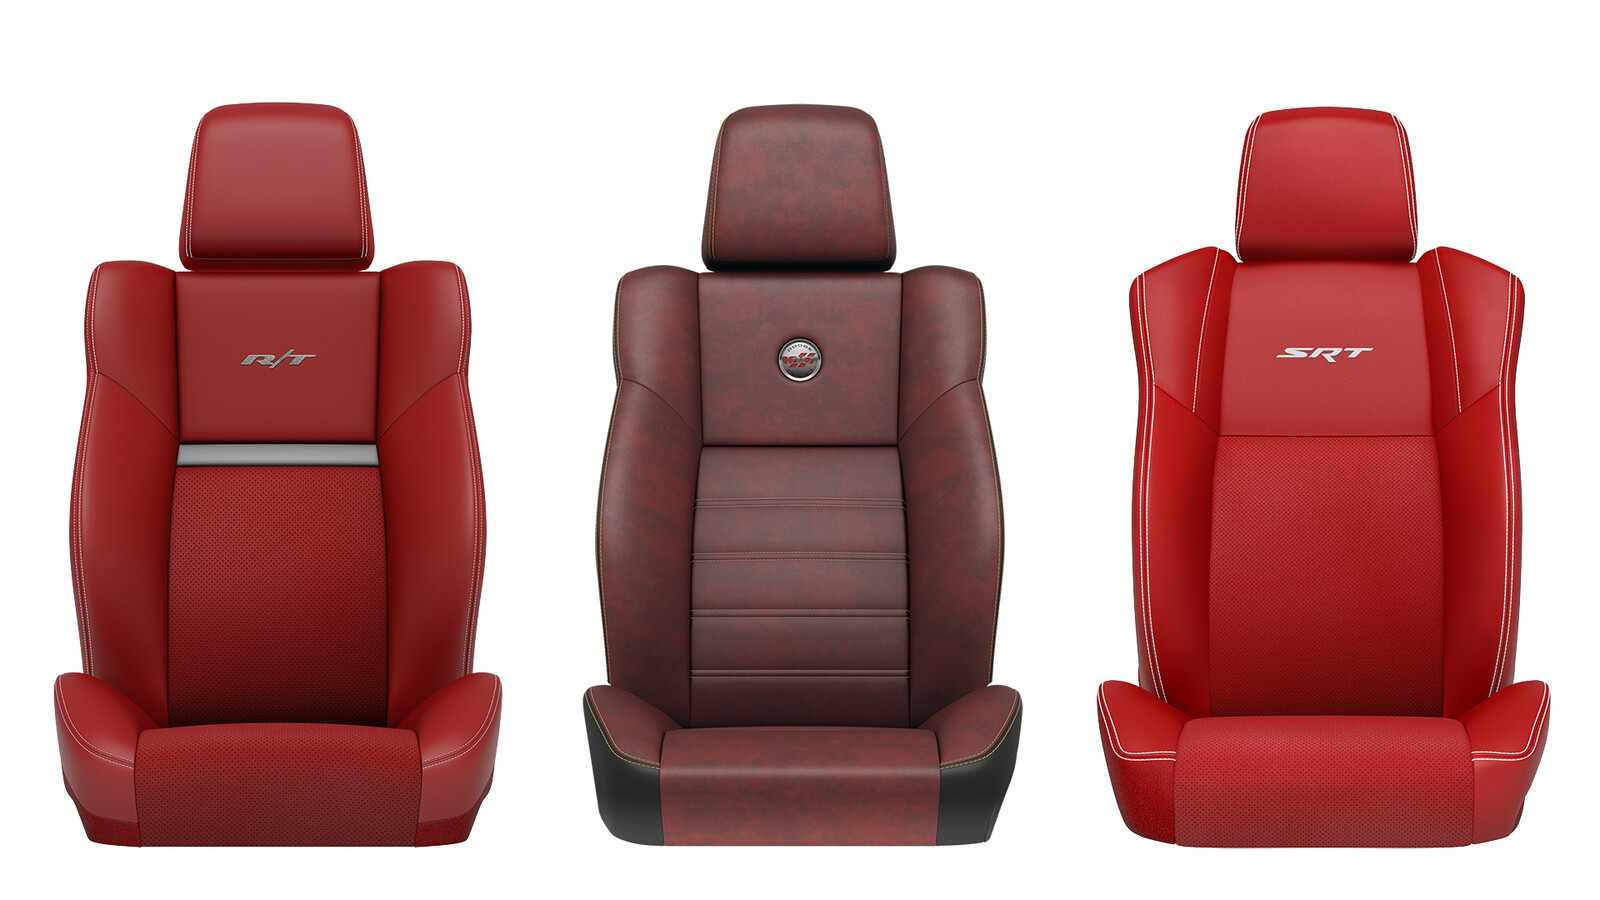 Dodge Challenger Seats: Fully CG